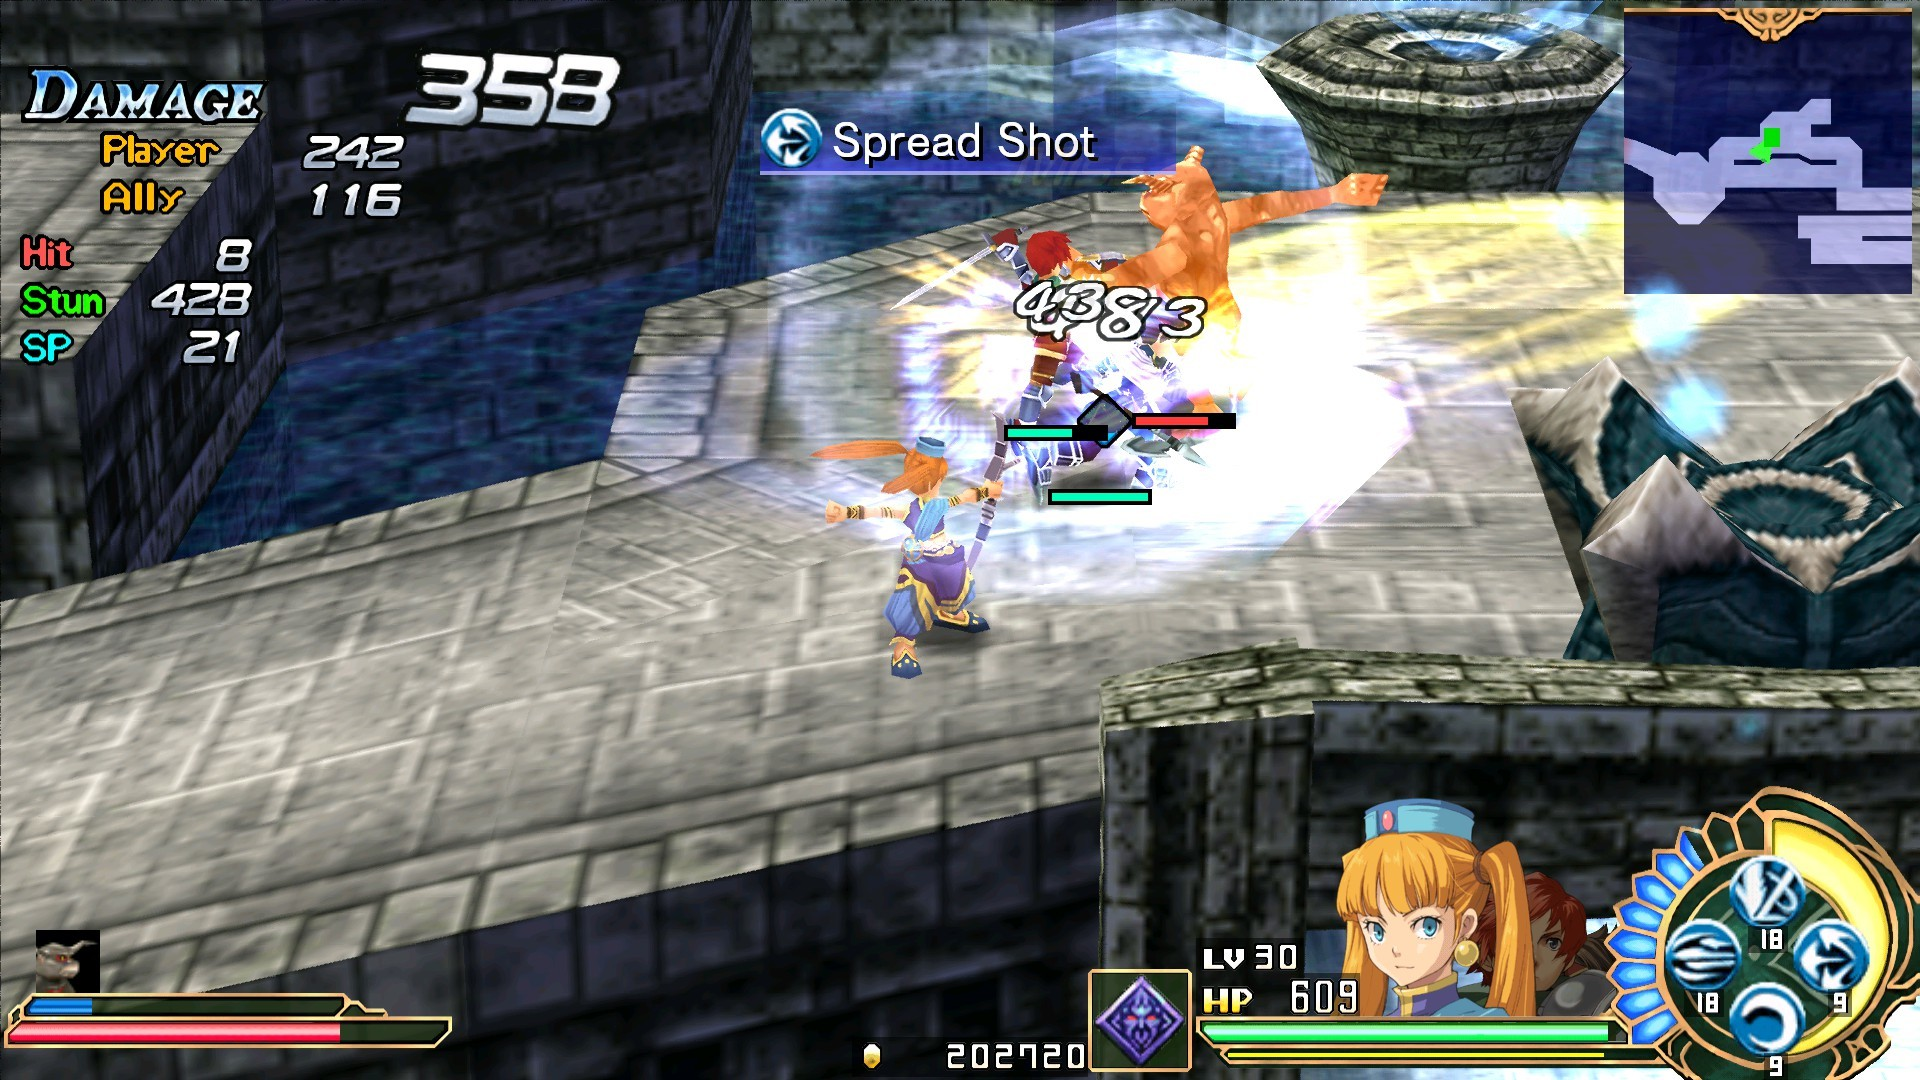 XSEED To Bring Ys7 To Windows Machines Via Steam, Summer 2017 2